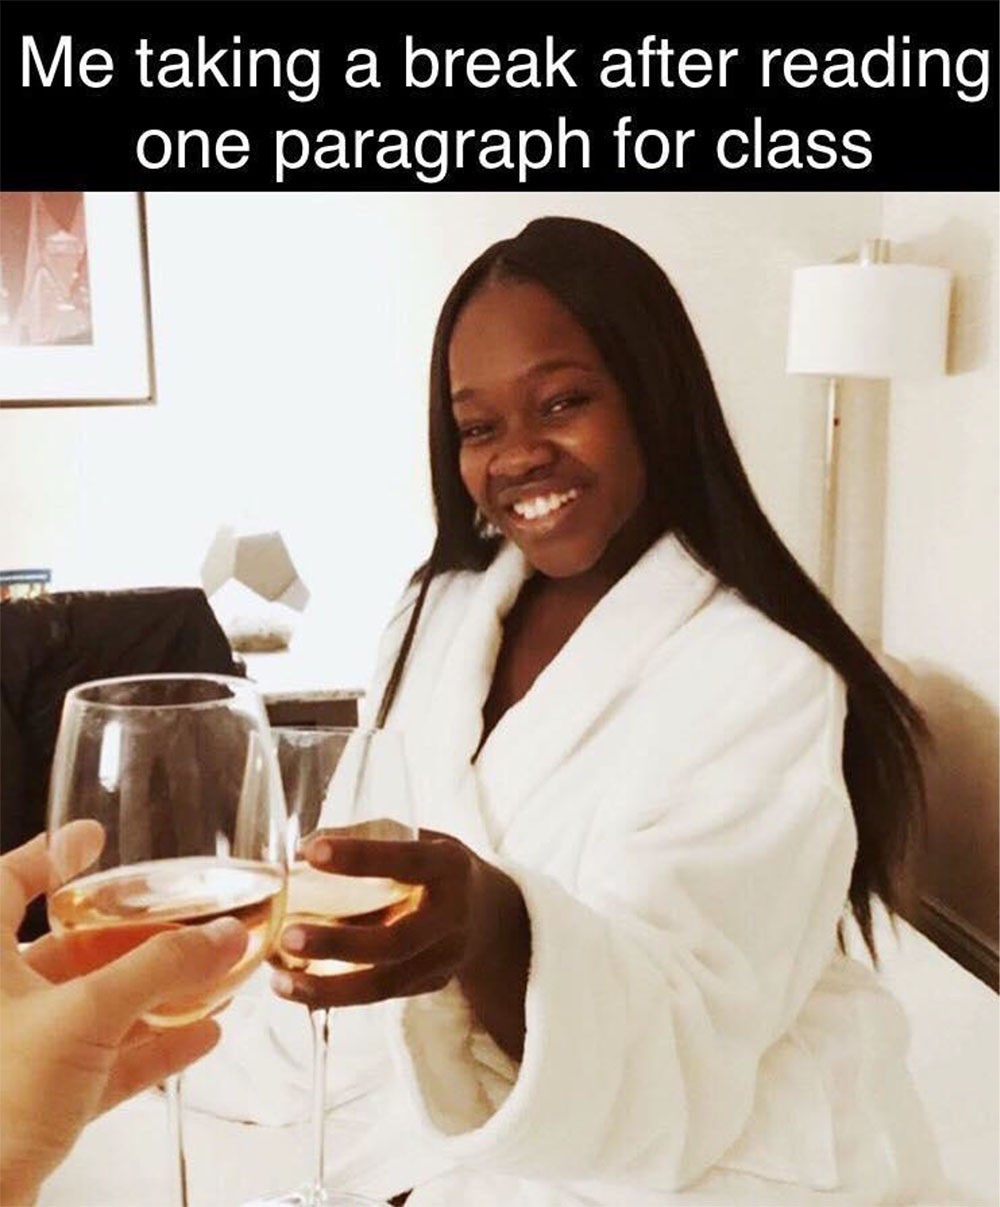 """Meme of a woman drinking wine with the caption: """"Me taking a break after reading one paragraph for class"""""""